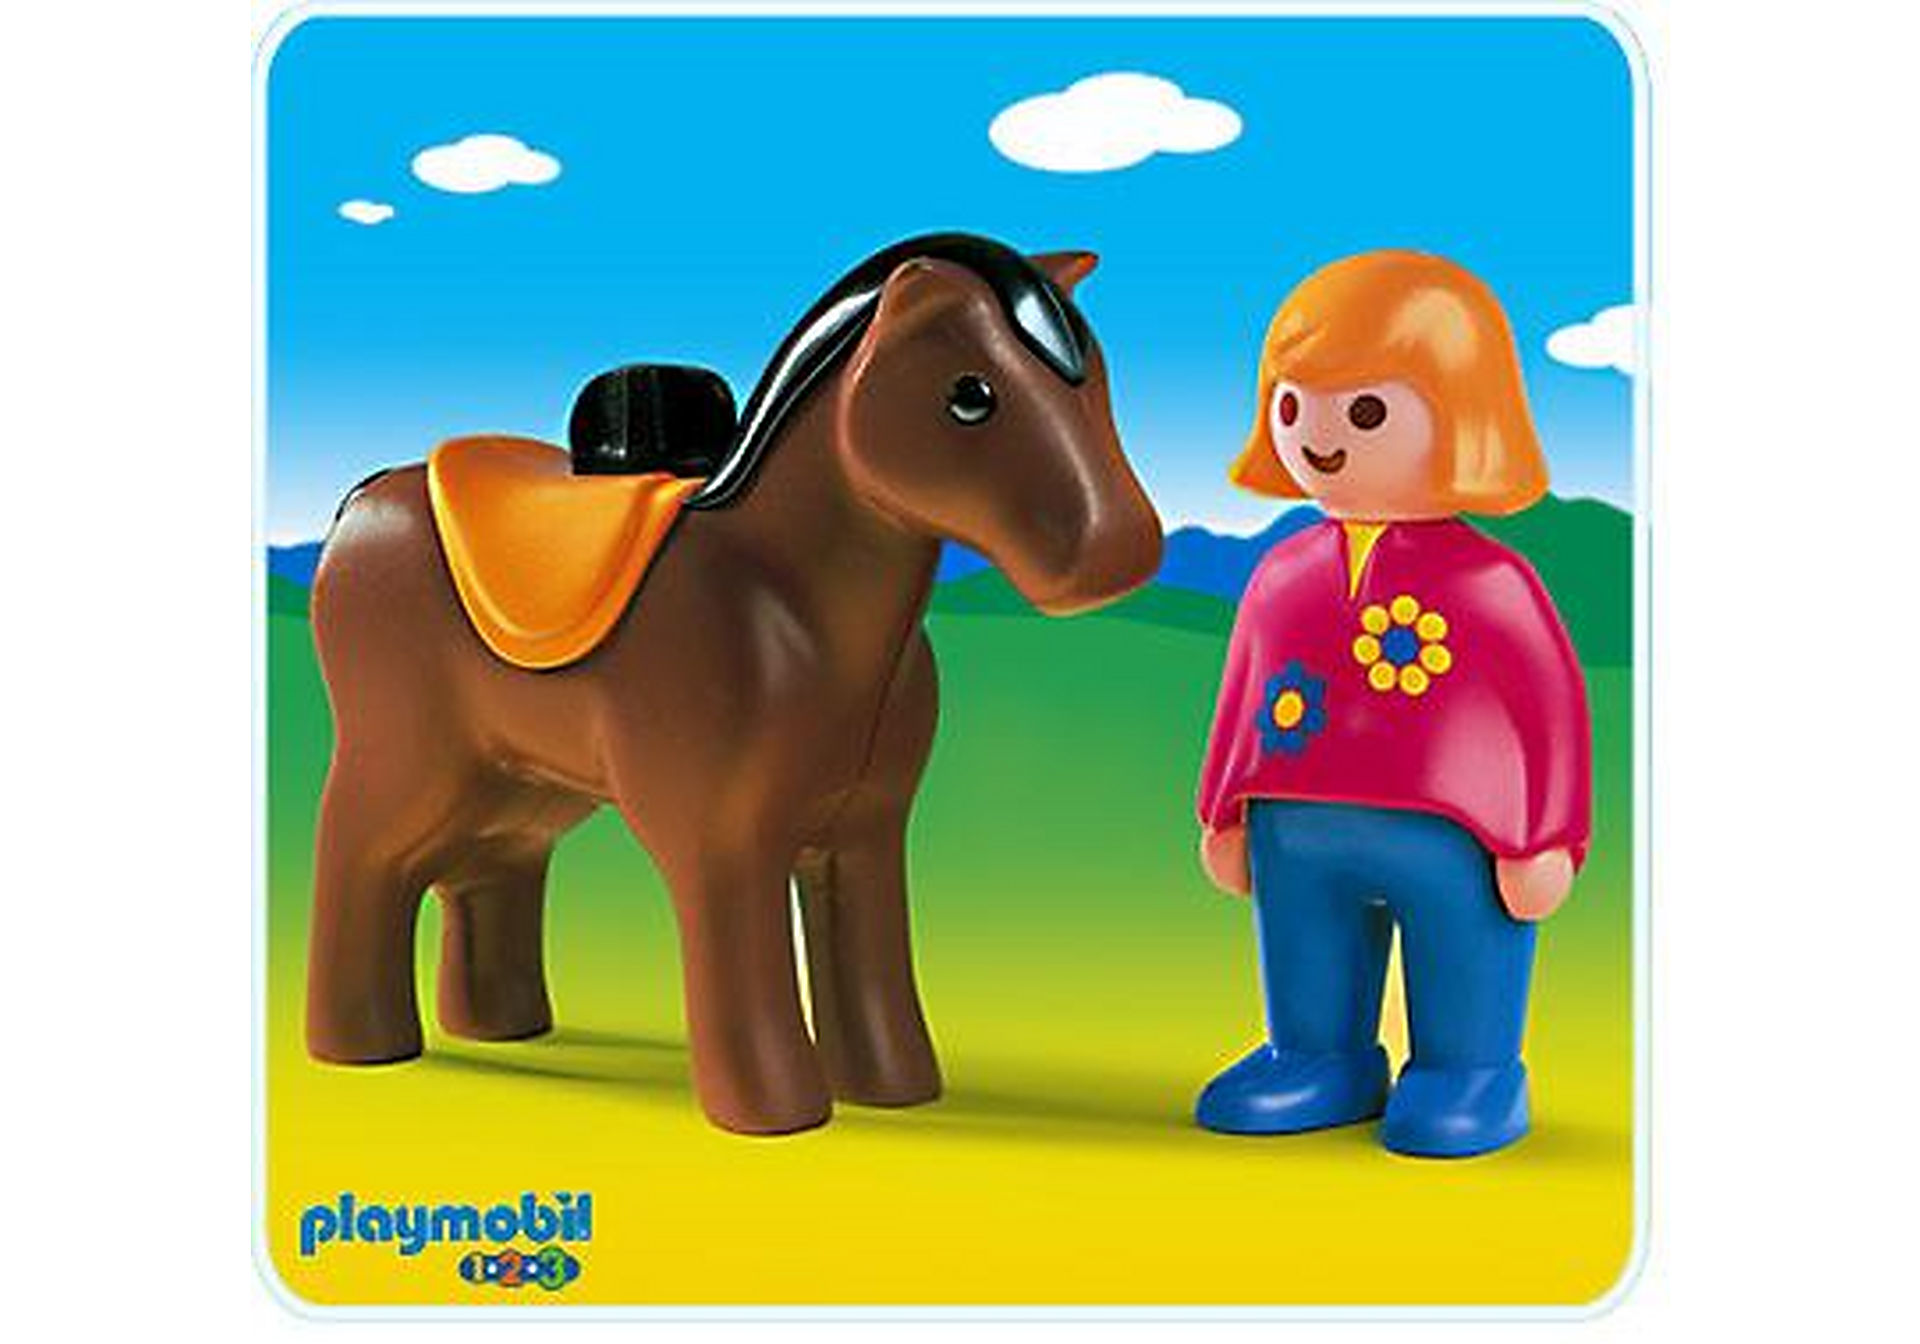 http://media.playmobil.com/i/playmobil/6723-A_product_detail/Cavalière / cheval 1.2.3